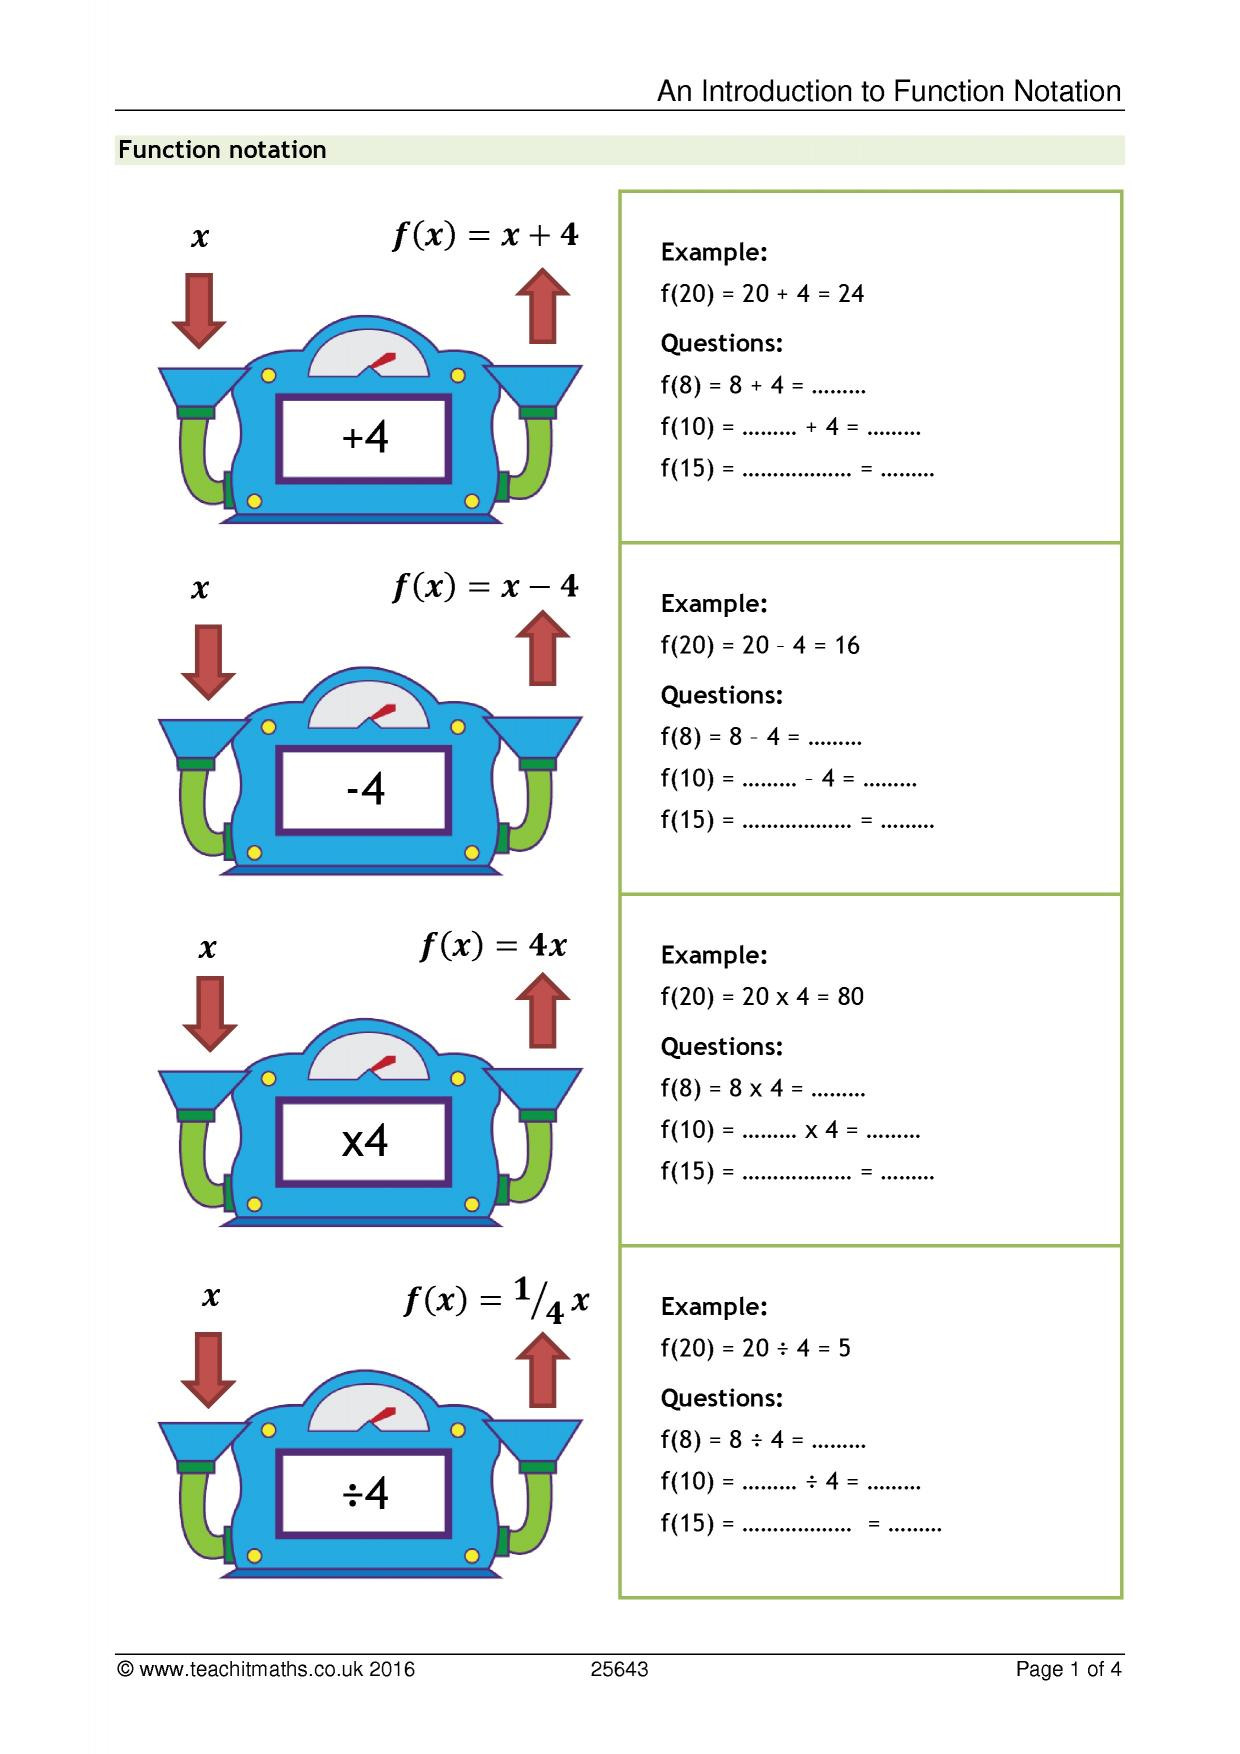 Function Notation Worksheet Answers An Introduction to Function Notation